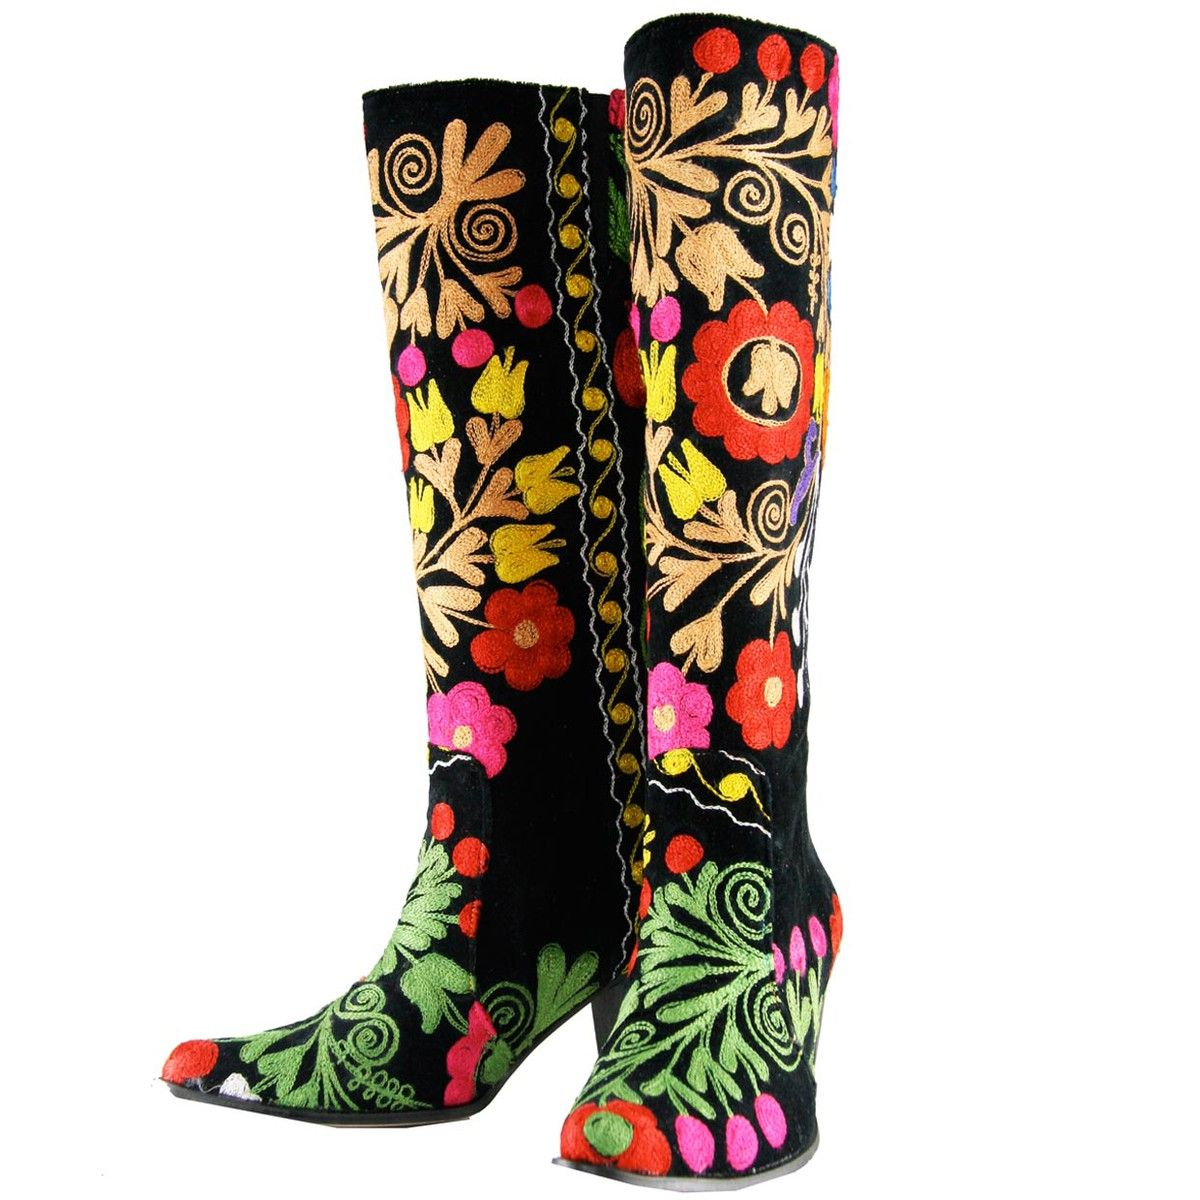 Aliya Floral Boots Wearable Art Boots Floral Boots